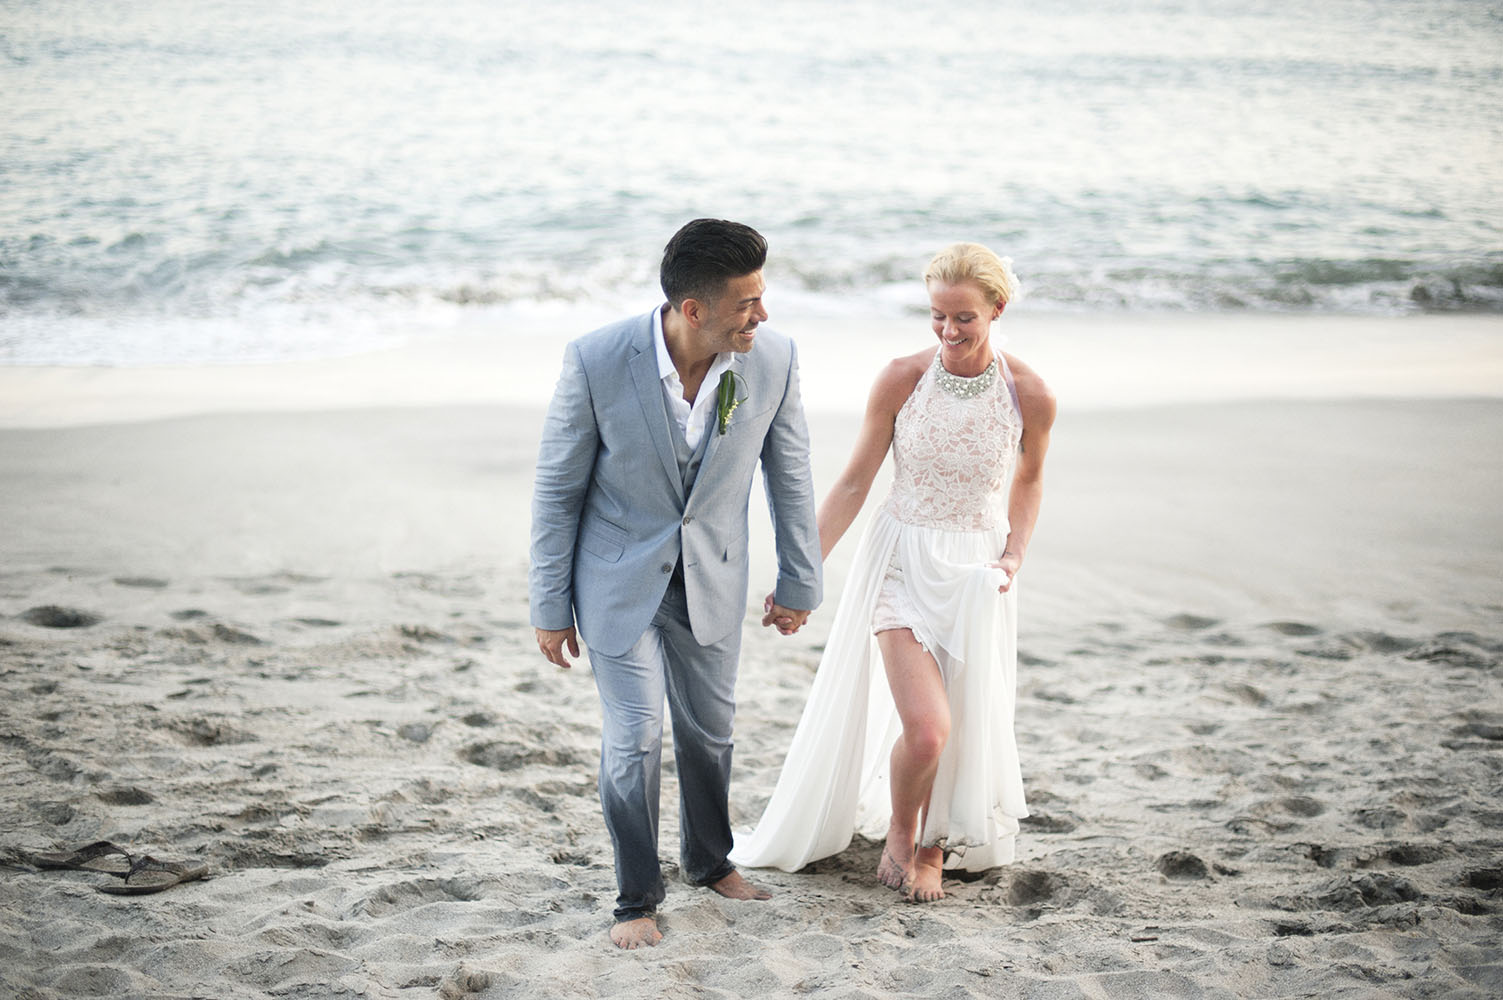 bride and groom walk on beach in Costa Rica